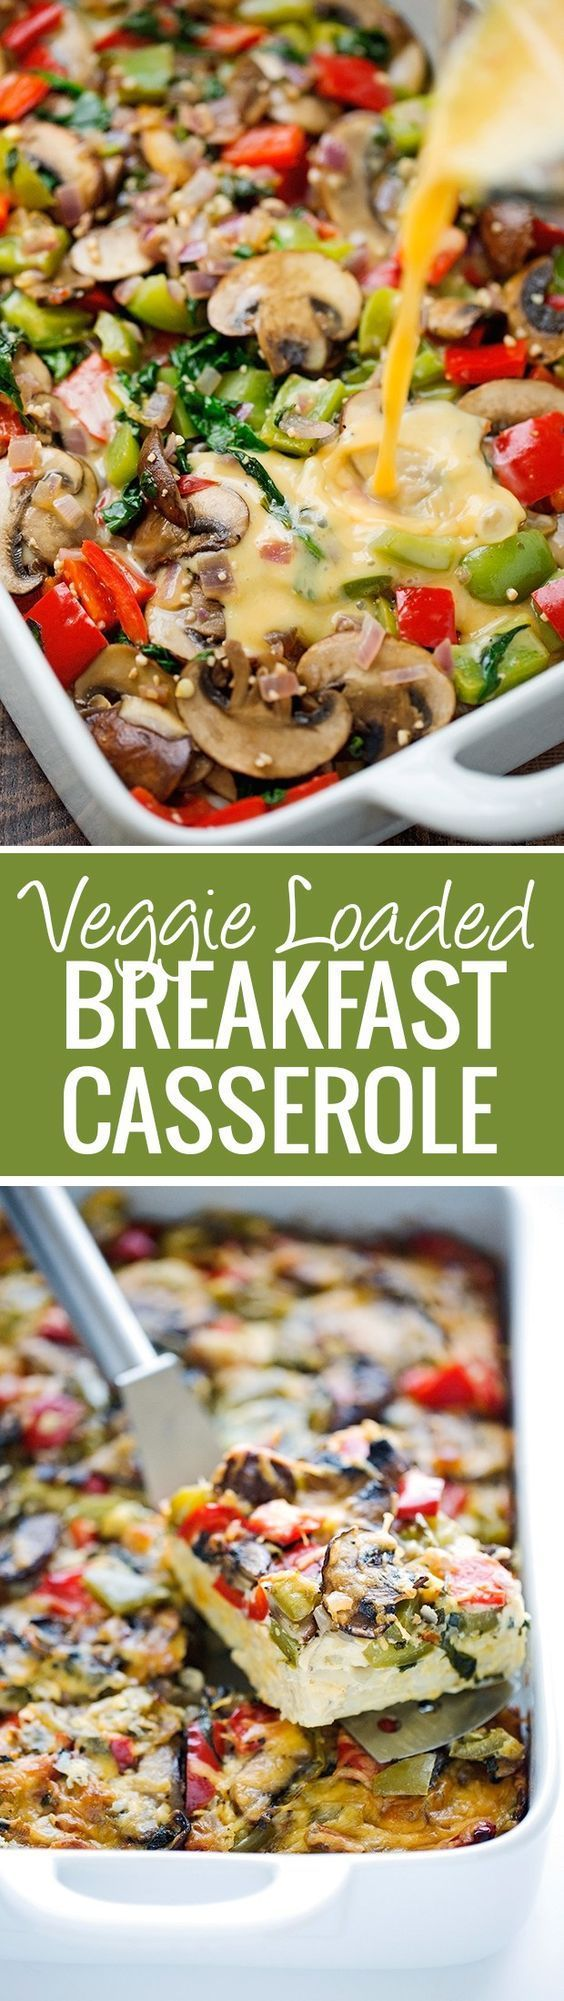 Veggie Loaded Breakfast Casserole - this breakfast is a perfect way to feed a crowd, you can customize it to include anything your family or guests enjoy and it actually tastes better when you re-heat it so it's a great make-ahead recipe. Swap potatoes for sweet potatoes, use a dairy free milk option - the choices are endless.